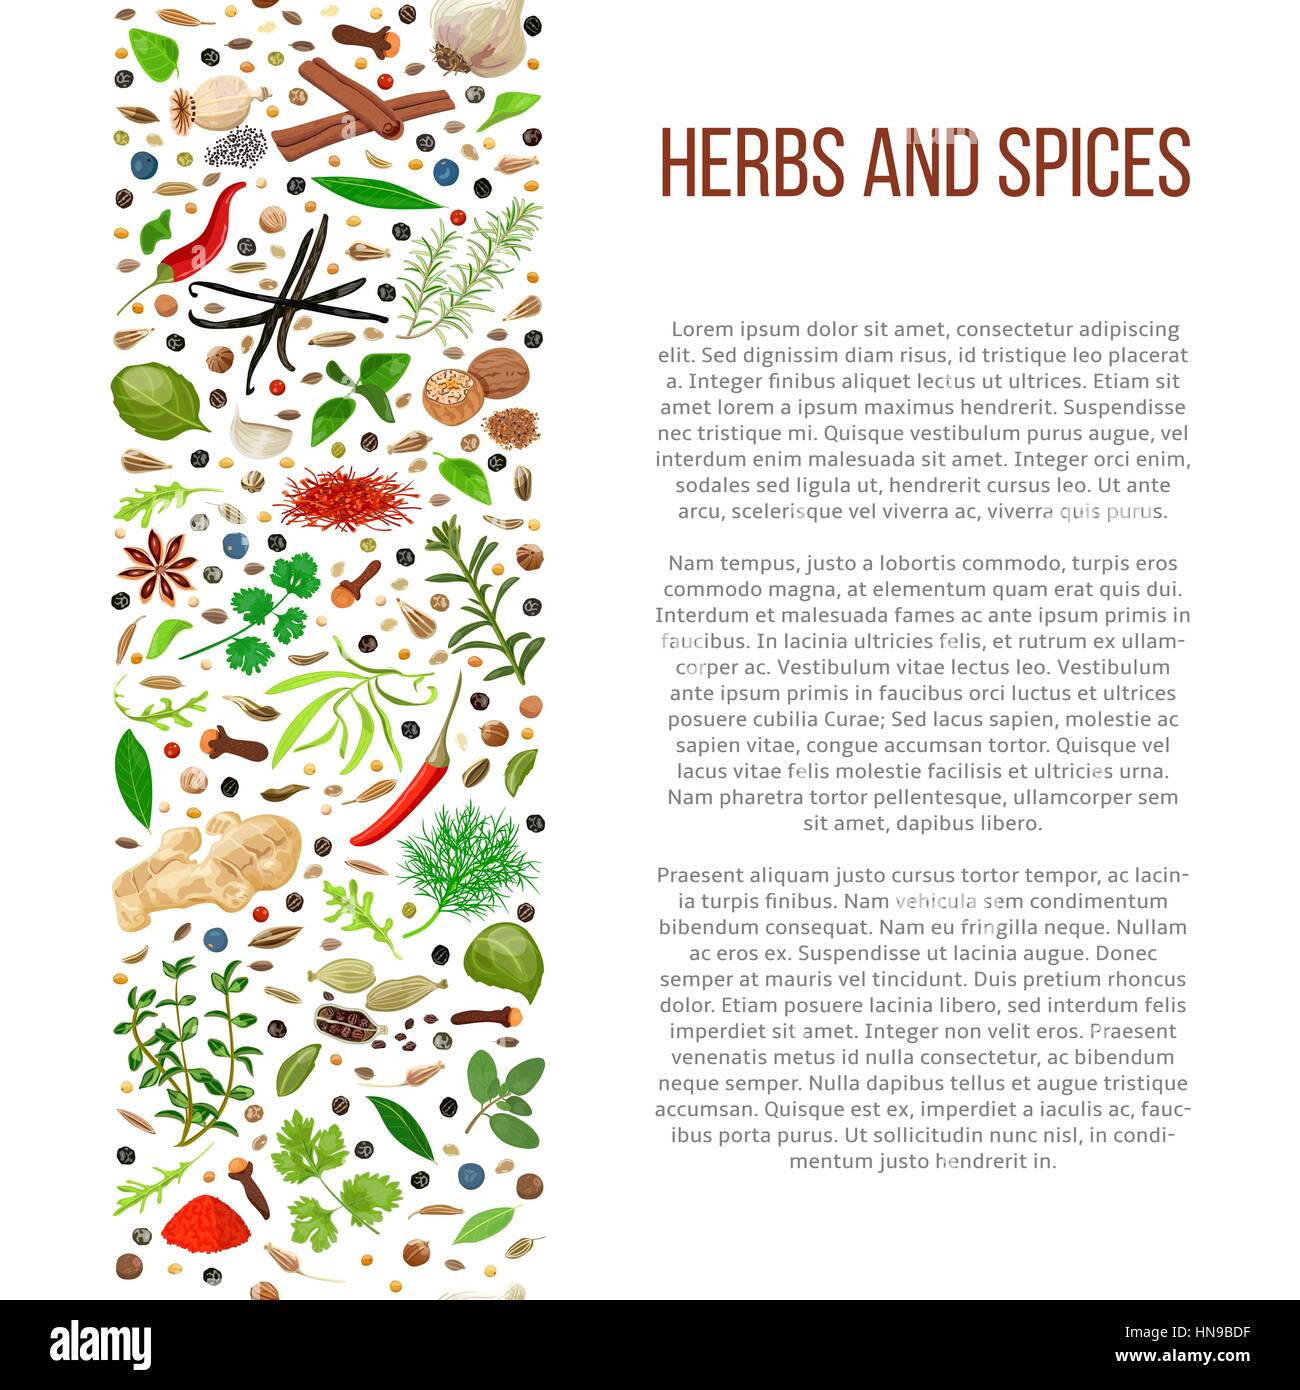 Poster design description - Popular Culinary Herbs And Spices Set In Column With Description Benefits Of Cooking Spices In Informative Poster With Text Design For Cosmetics